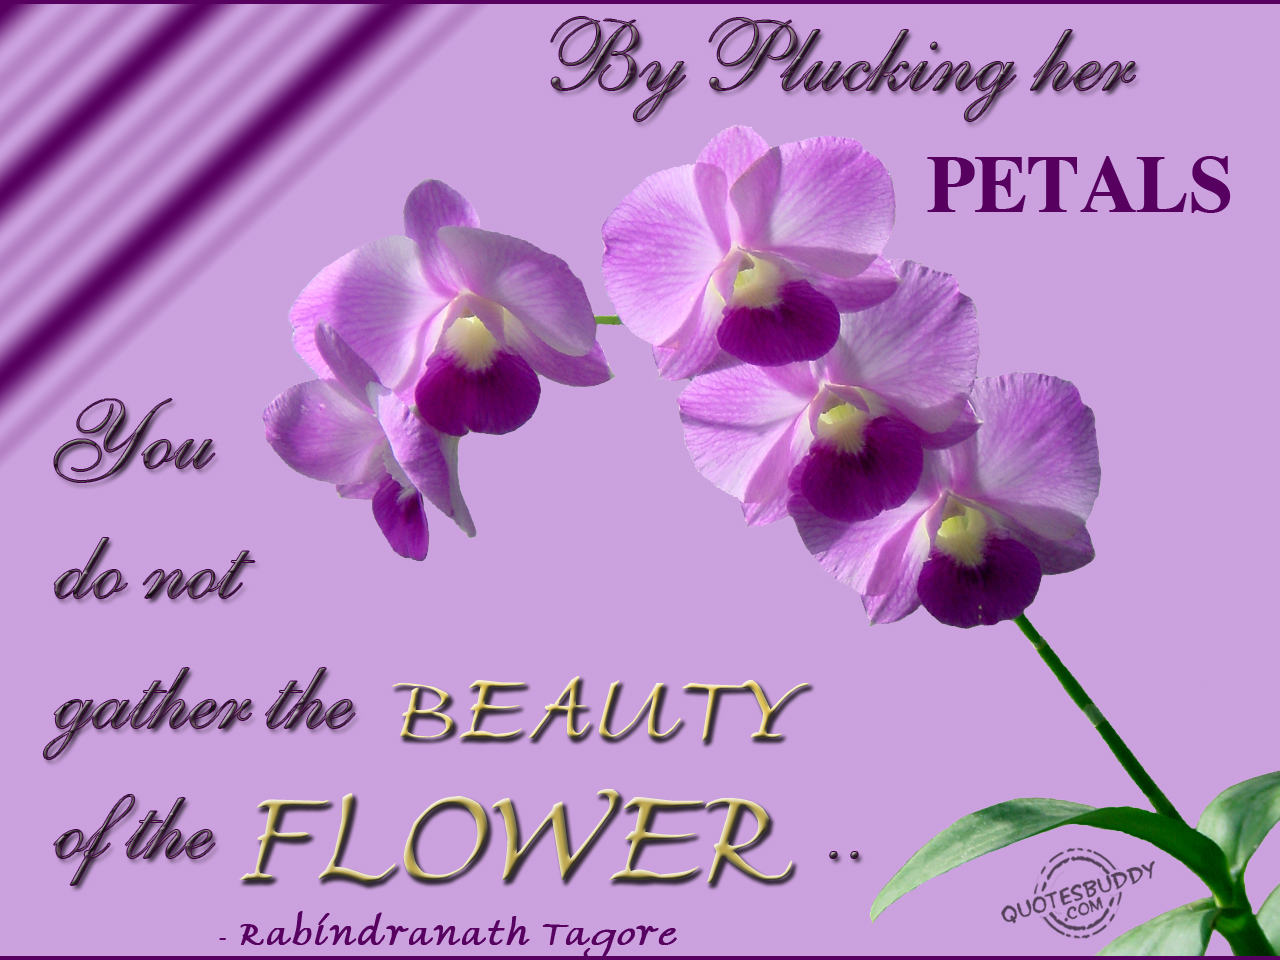 Flowers quotes tree quotes pictures of flowers with quotes quotes from flowers for algernon magazines 241 izmirmasajfo